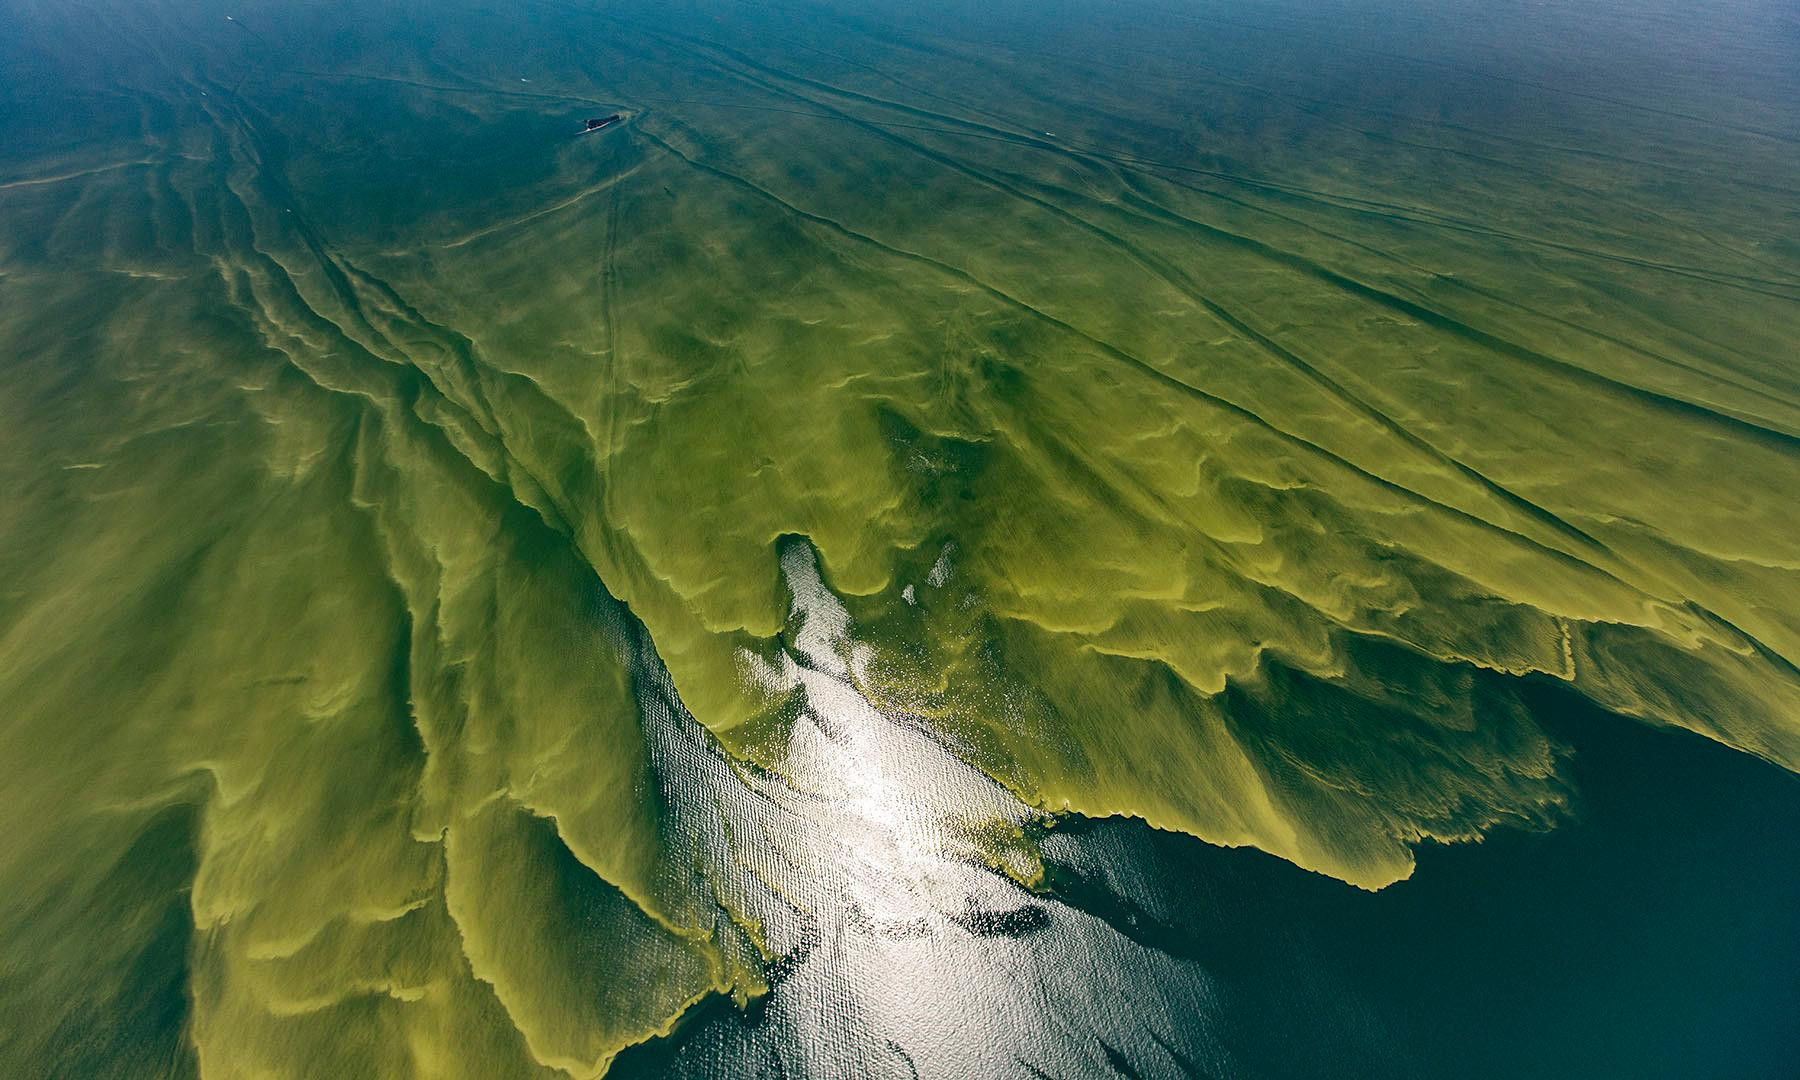 Lethal algae blooms – an ecosystem out of balance